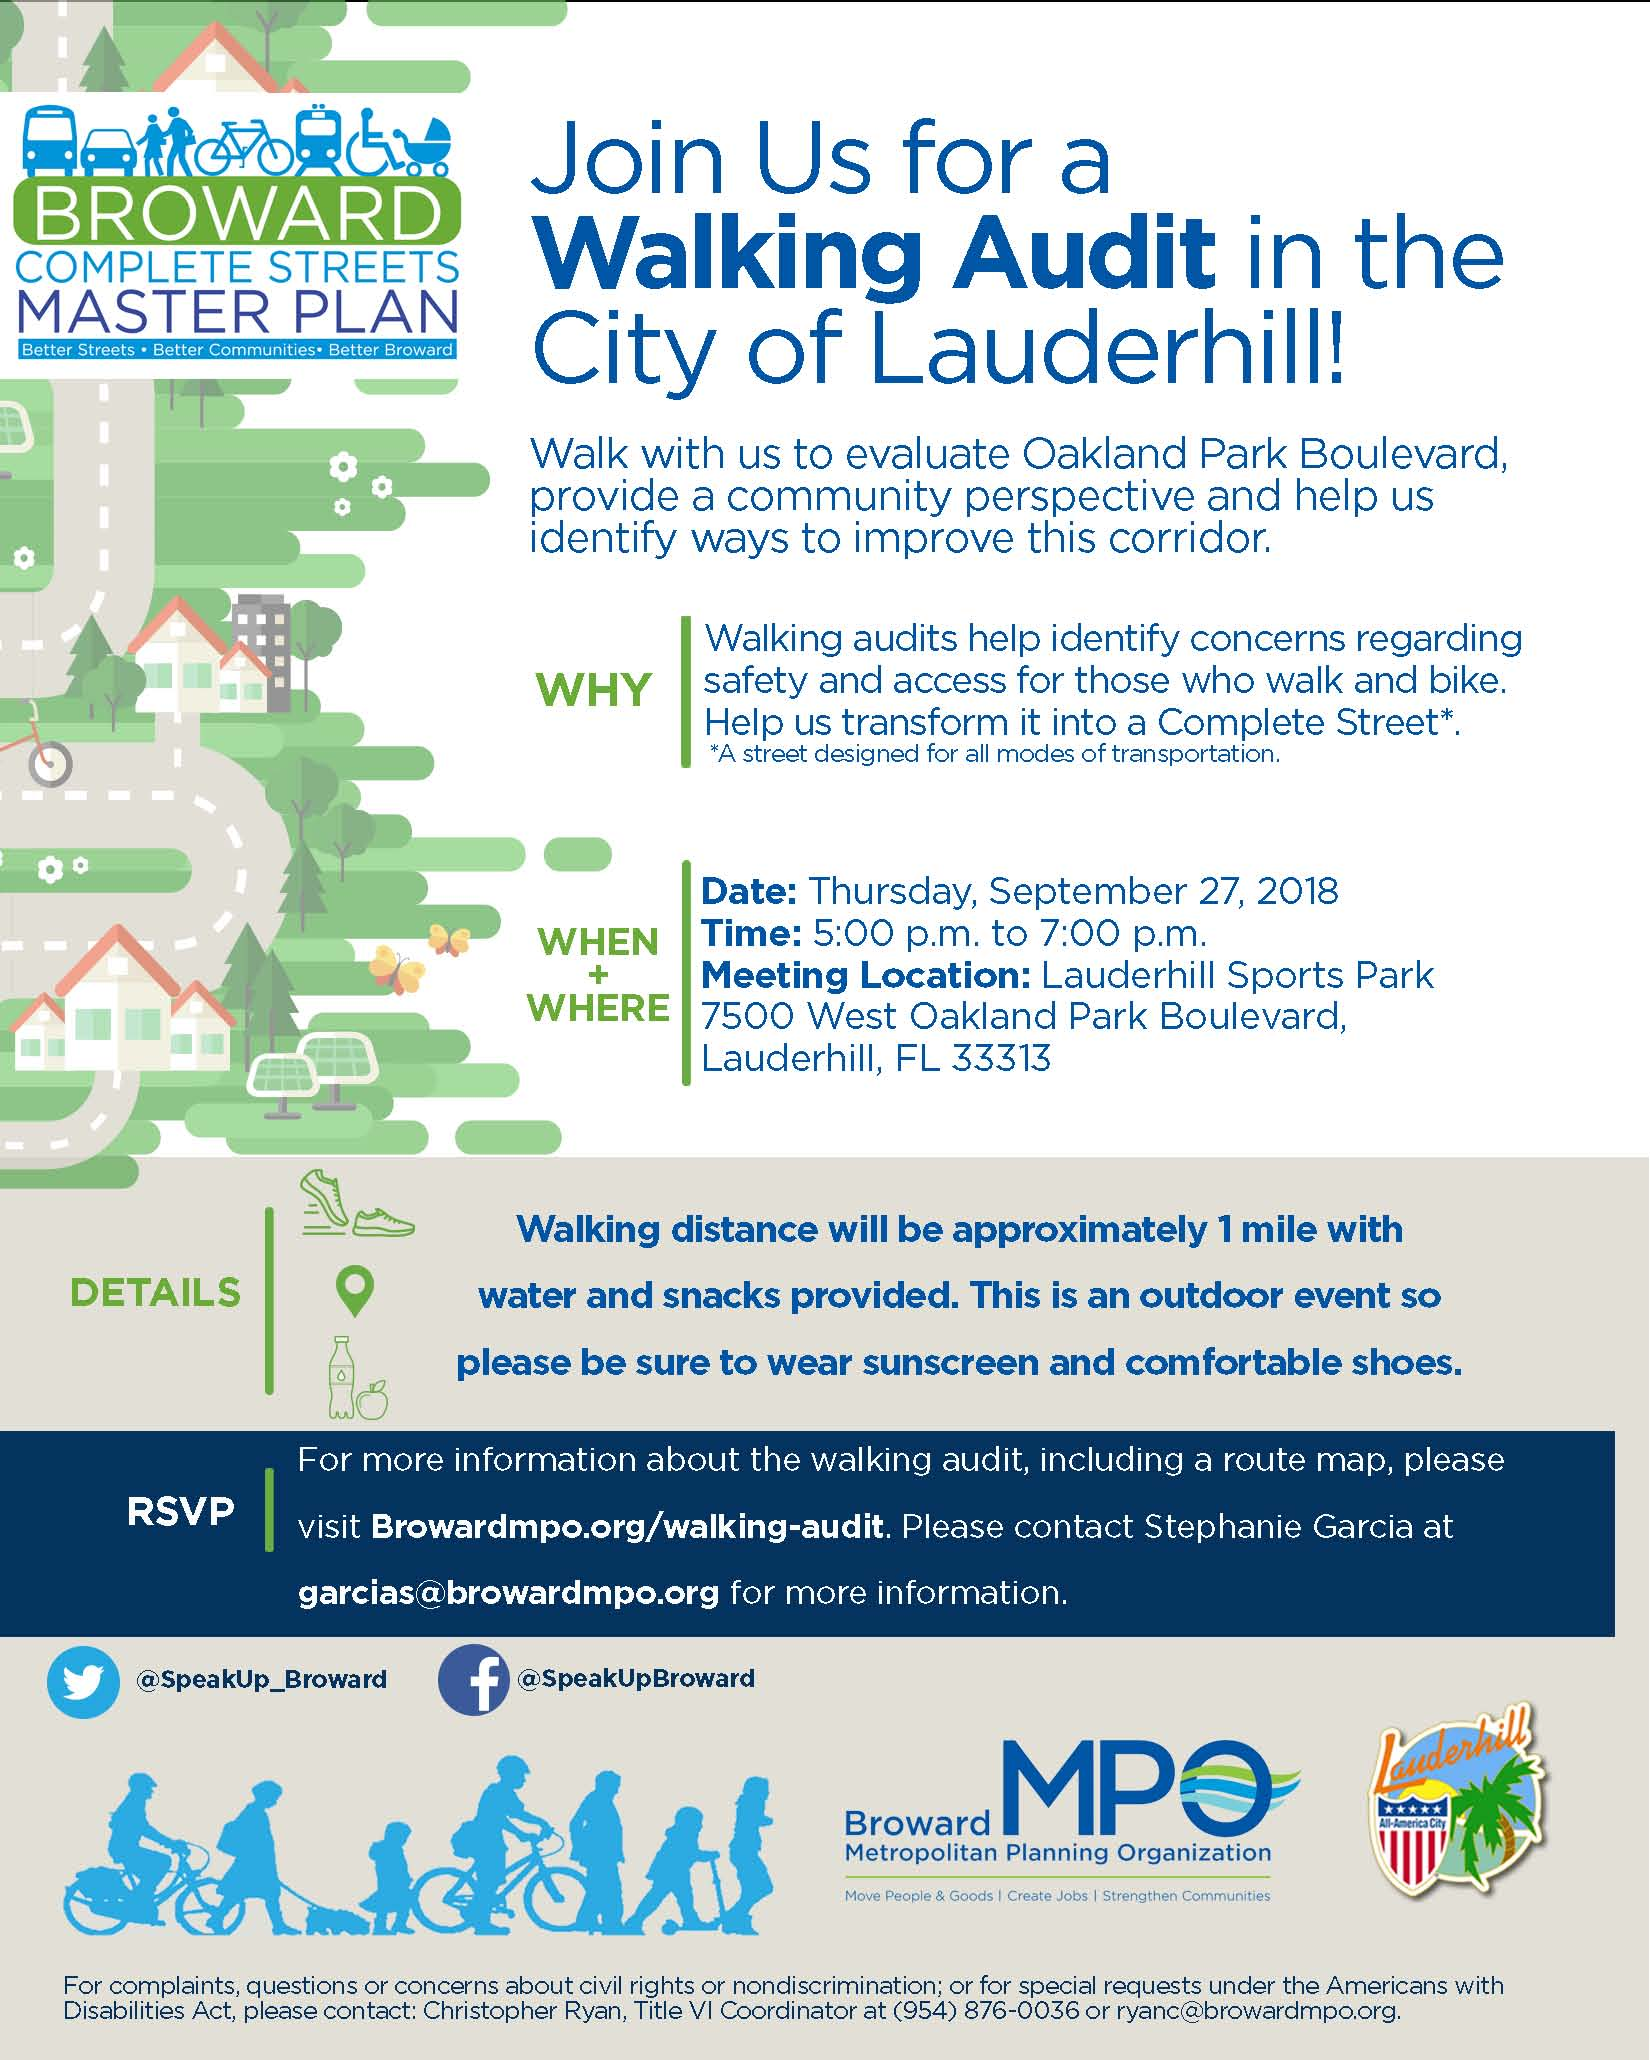 20180724 Walking Audit Flyer Lauderhill